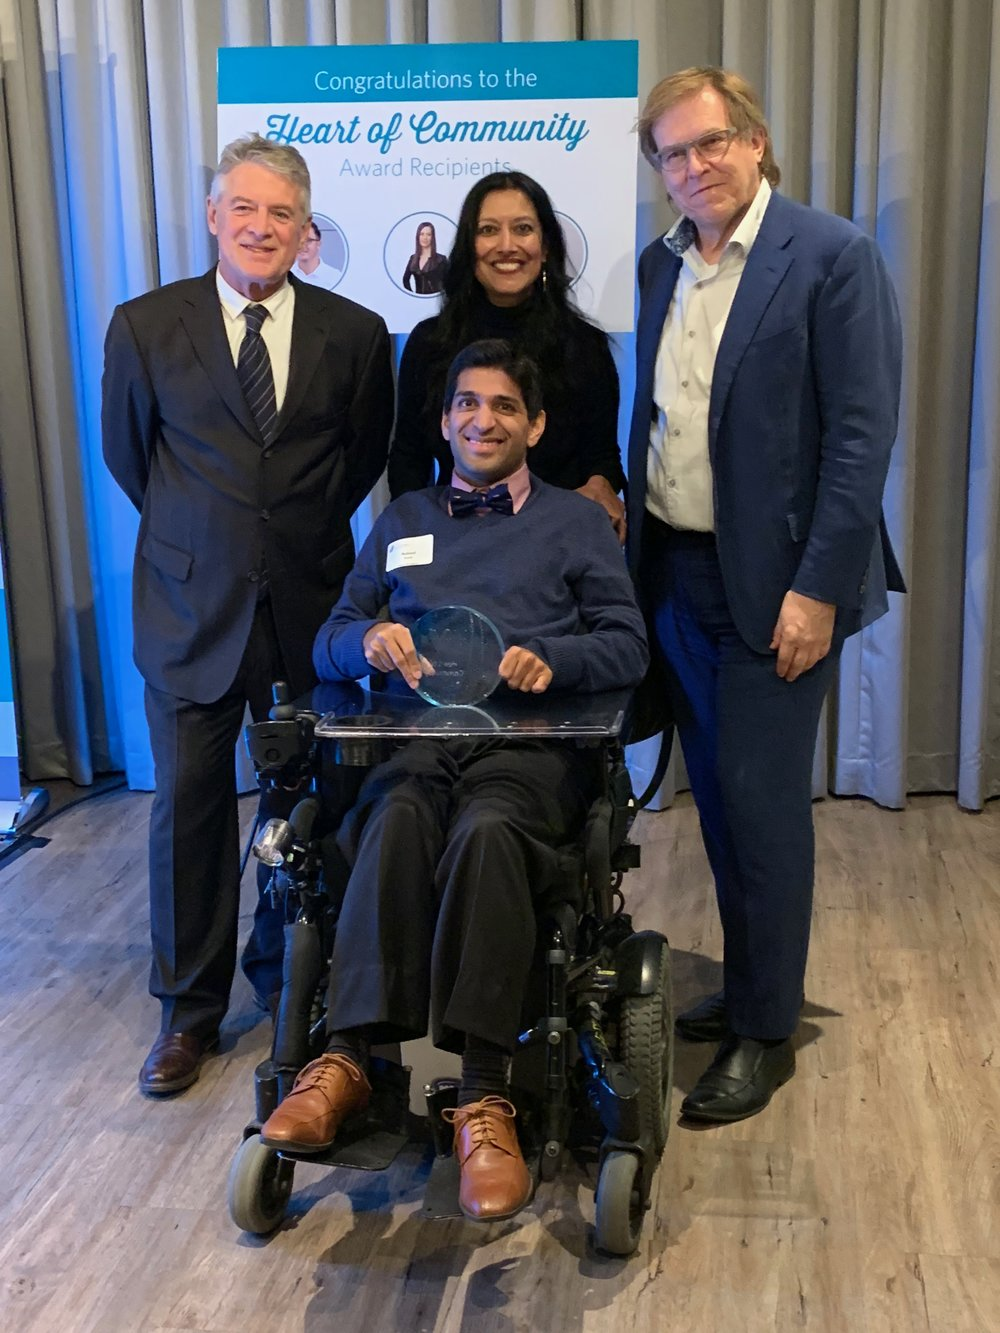 Accessible Housing's Heart of Community Award recipient, RK Access' Nabeel Ramji (front, center) along with RK Access' Erin Shilliday (back, left), Riddell Kurczaba's Niha Kroliczek (back, center) and Ron Kurczaba (back, right).